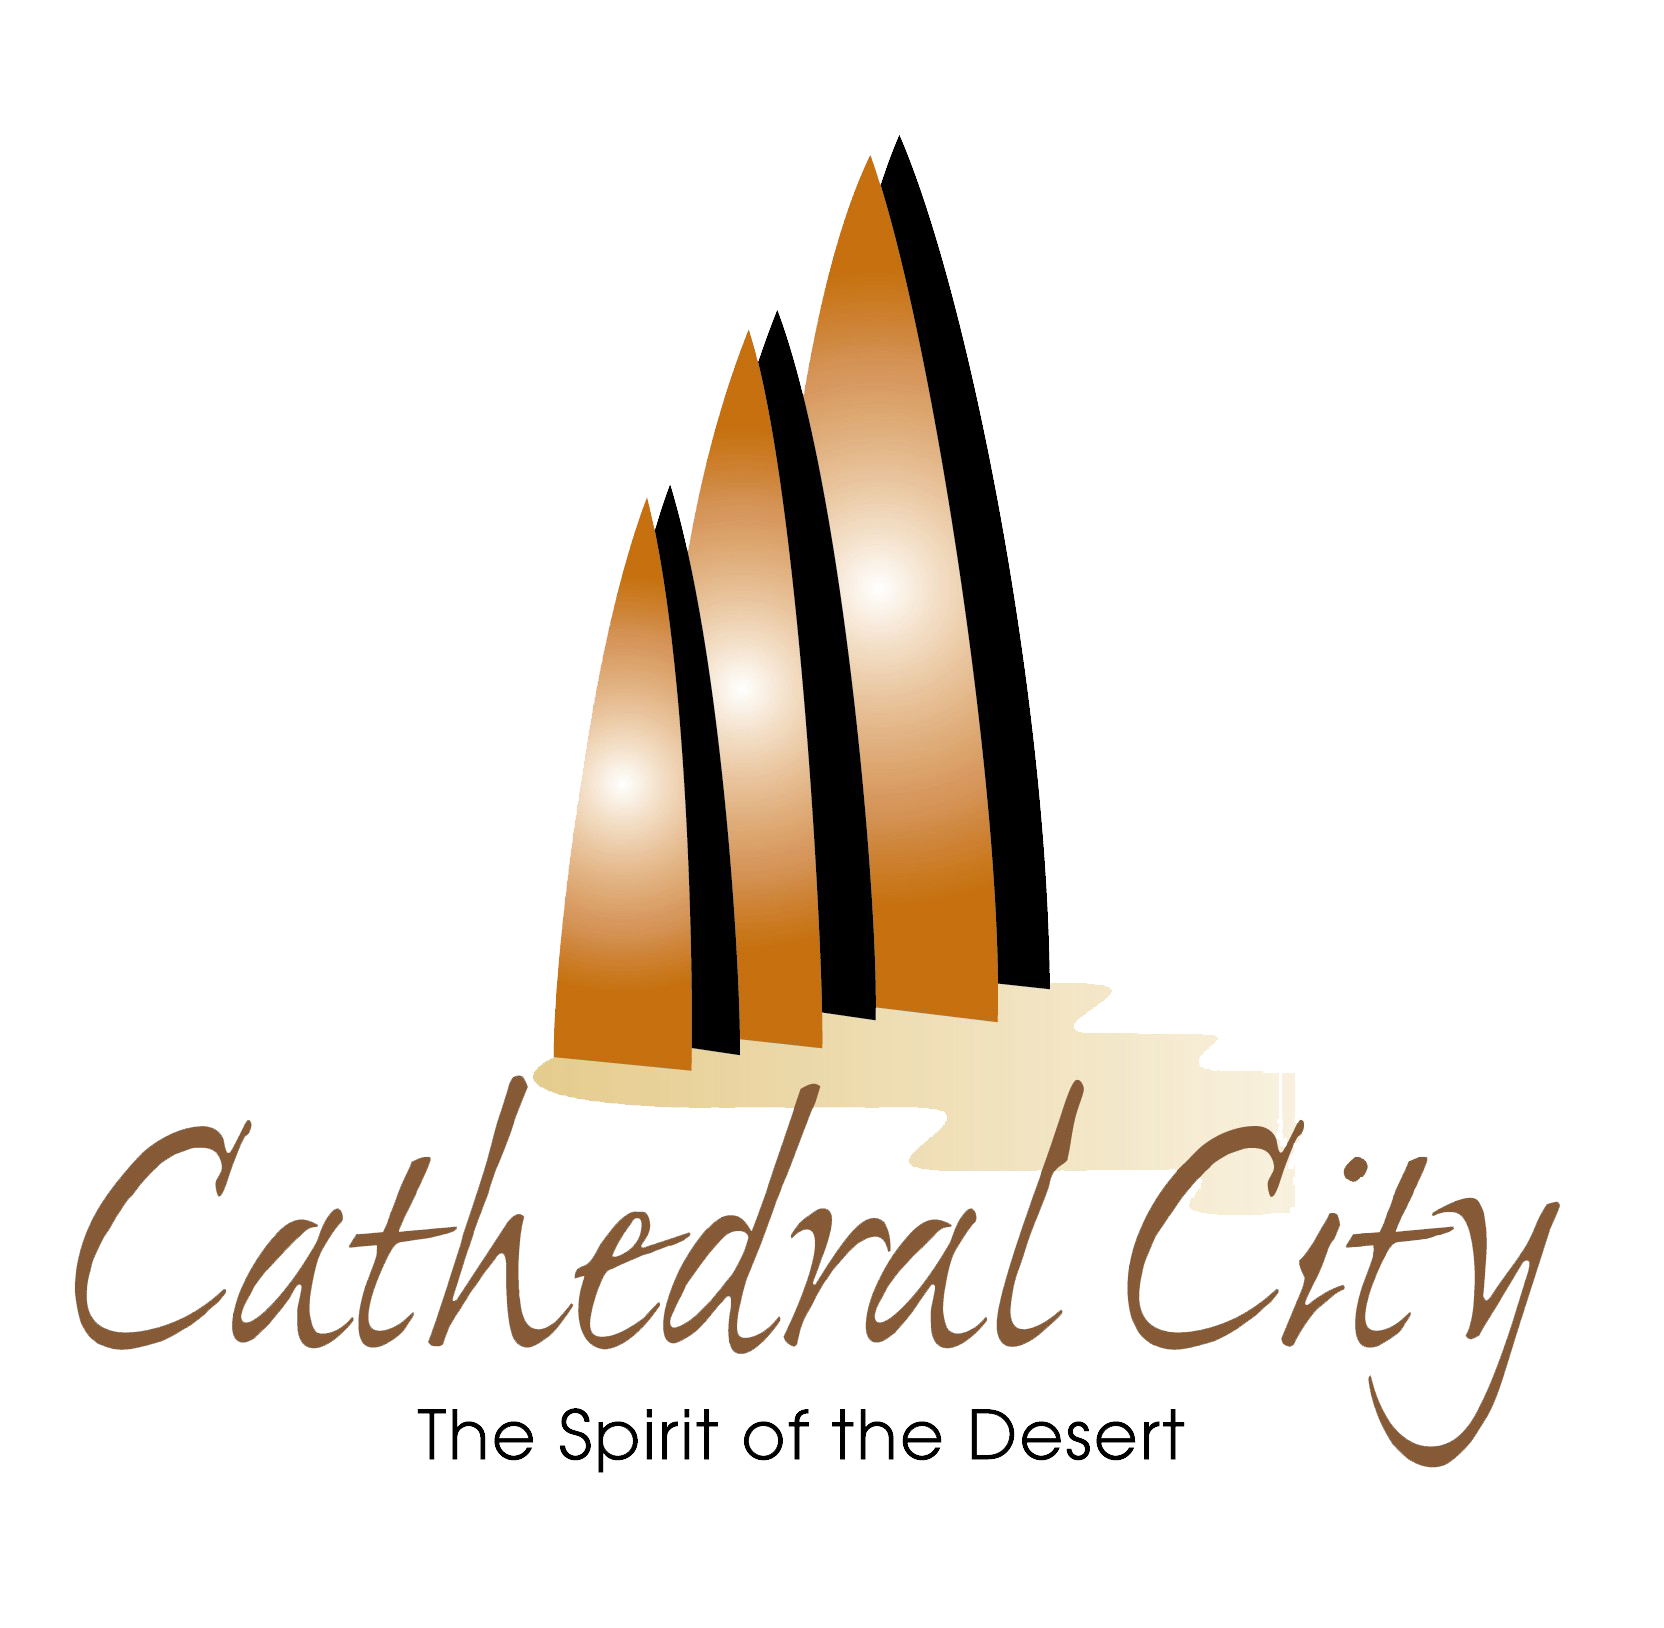 CathedralCity05Logo.png